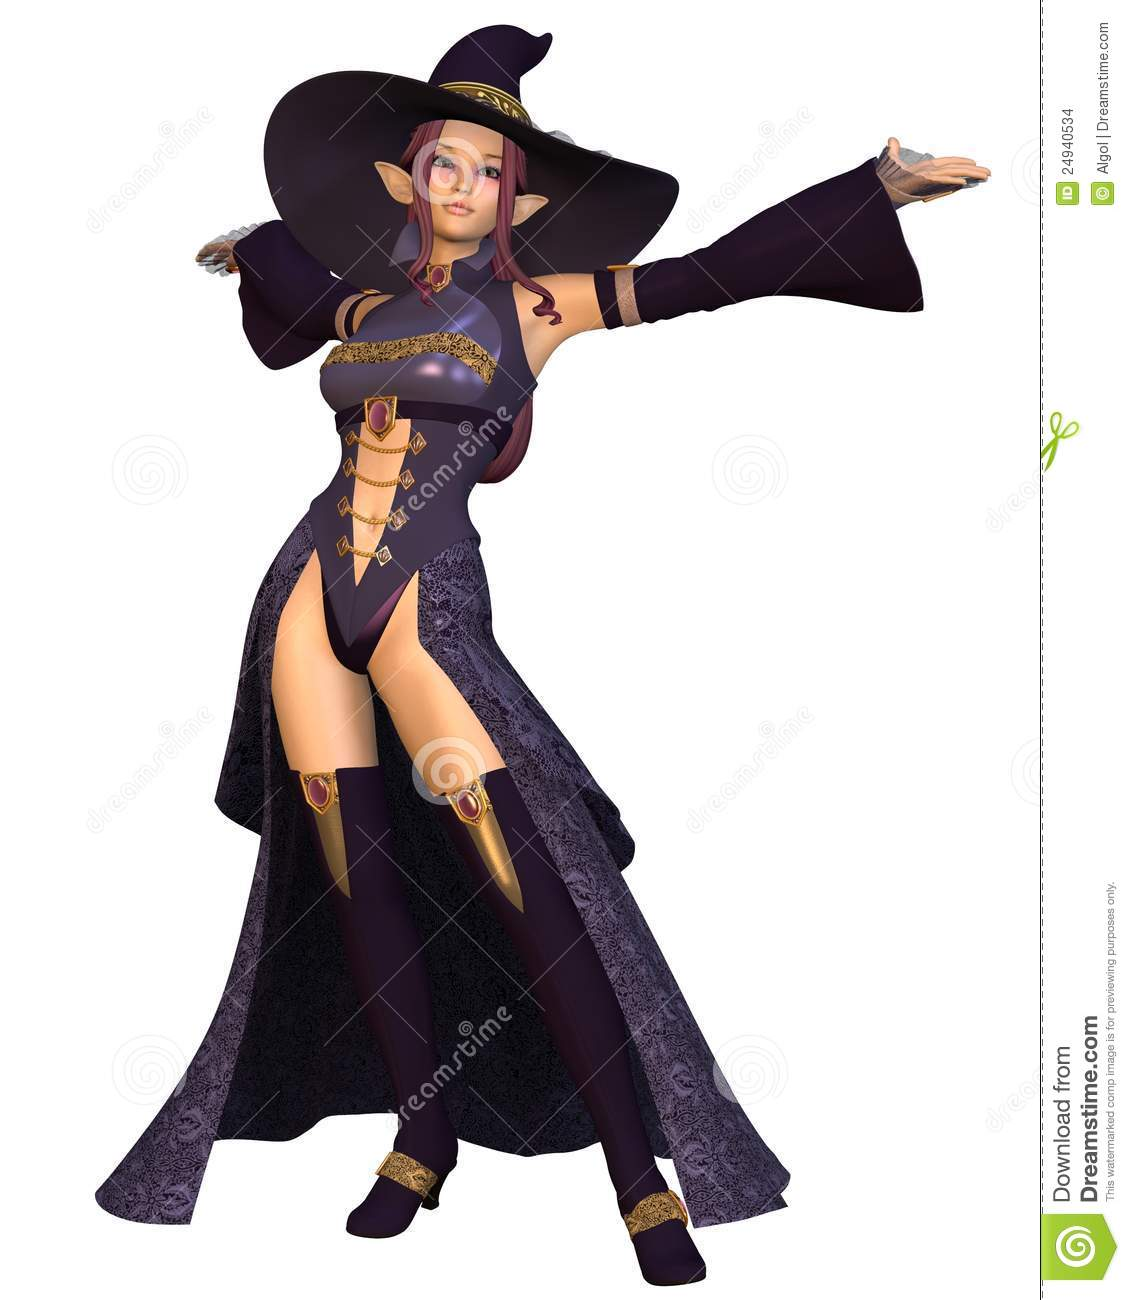 young female elven wizard in purple hat and robes 3d digitally